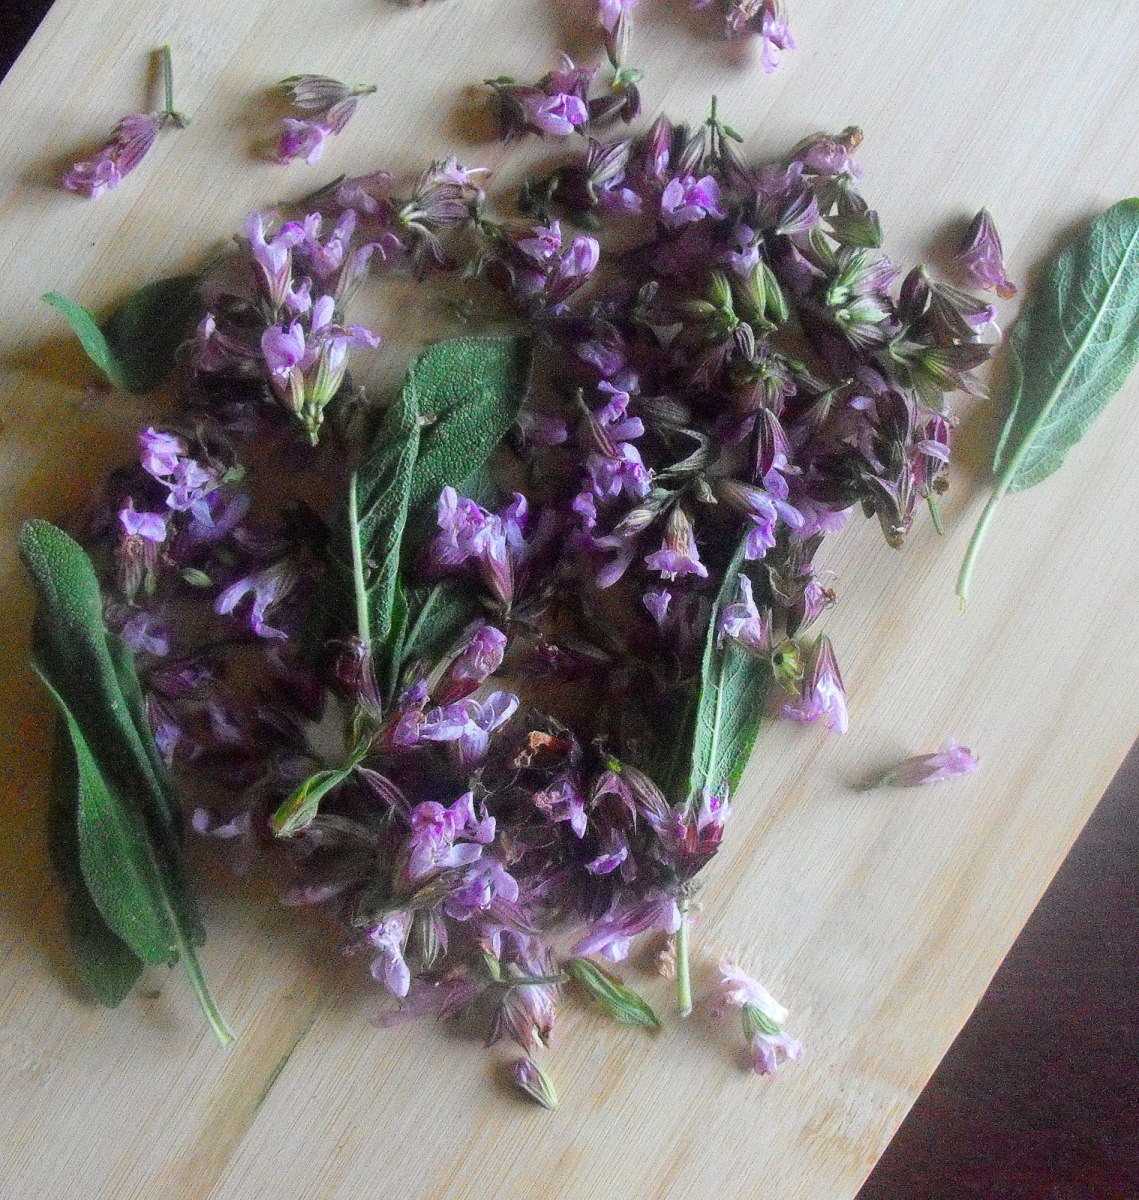 Savory Sage Blossom Pesto: A Culinary Spell for Youth, Beauty and Wisdom